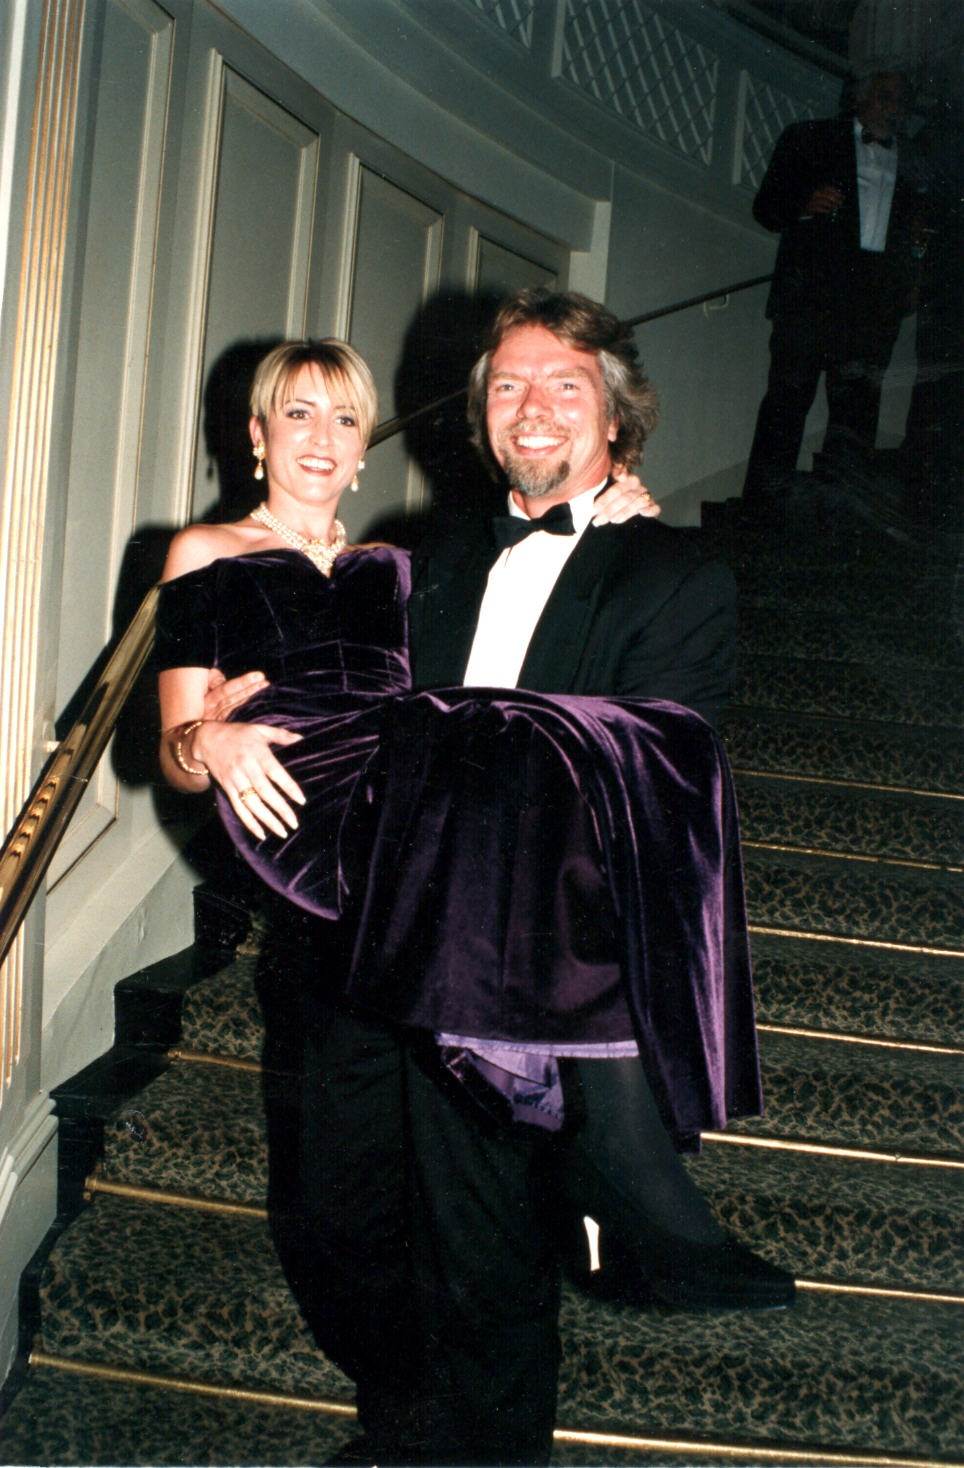 Richard Branson carry Heather at the 1996 Outstanding Young Person of the Year Award with Heather was awarded.